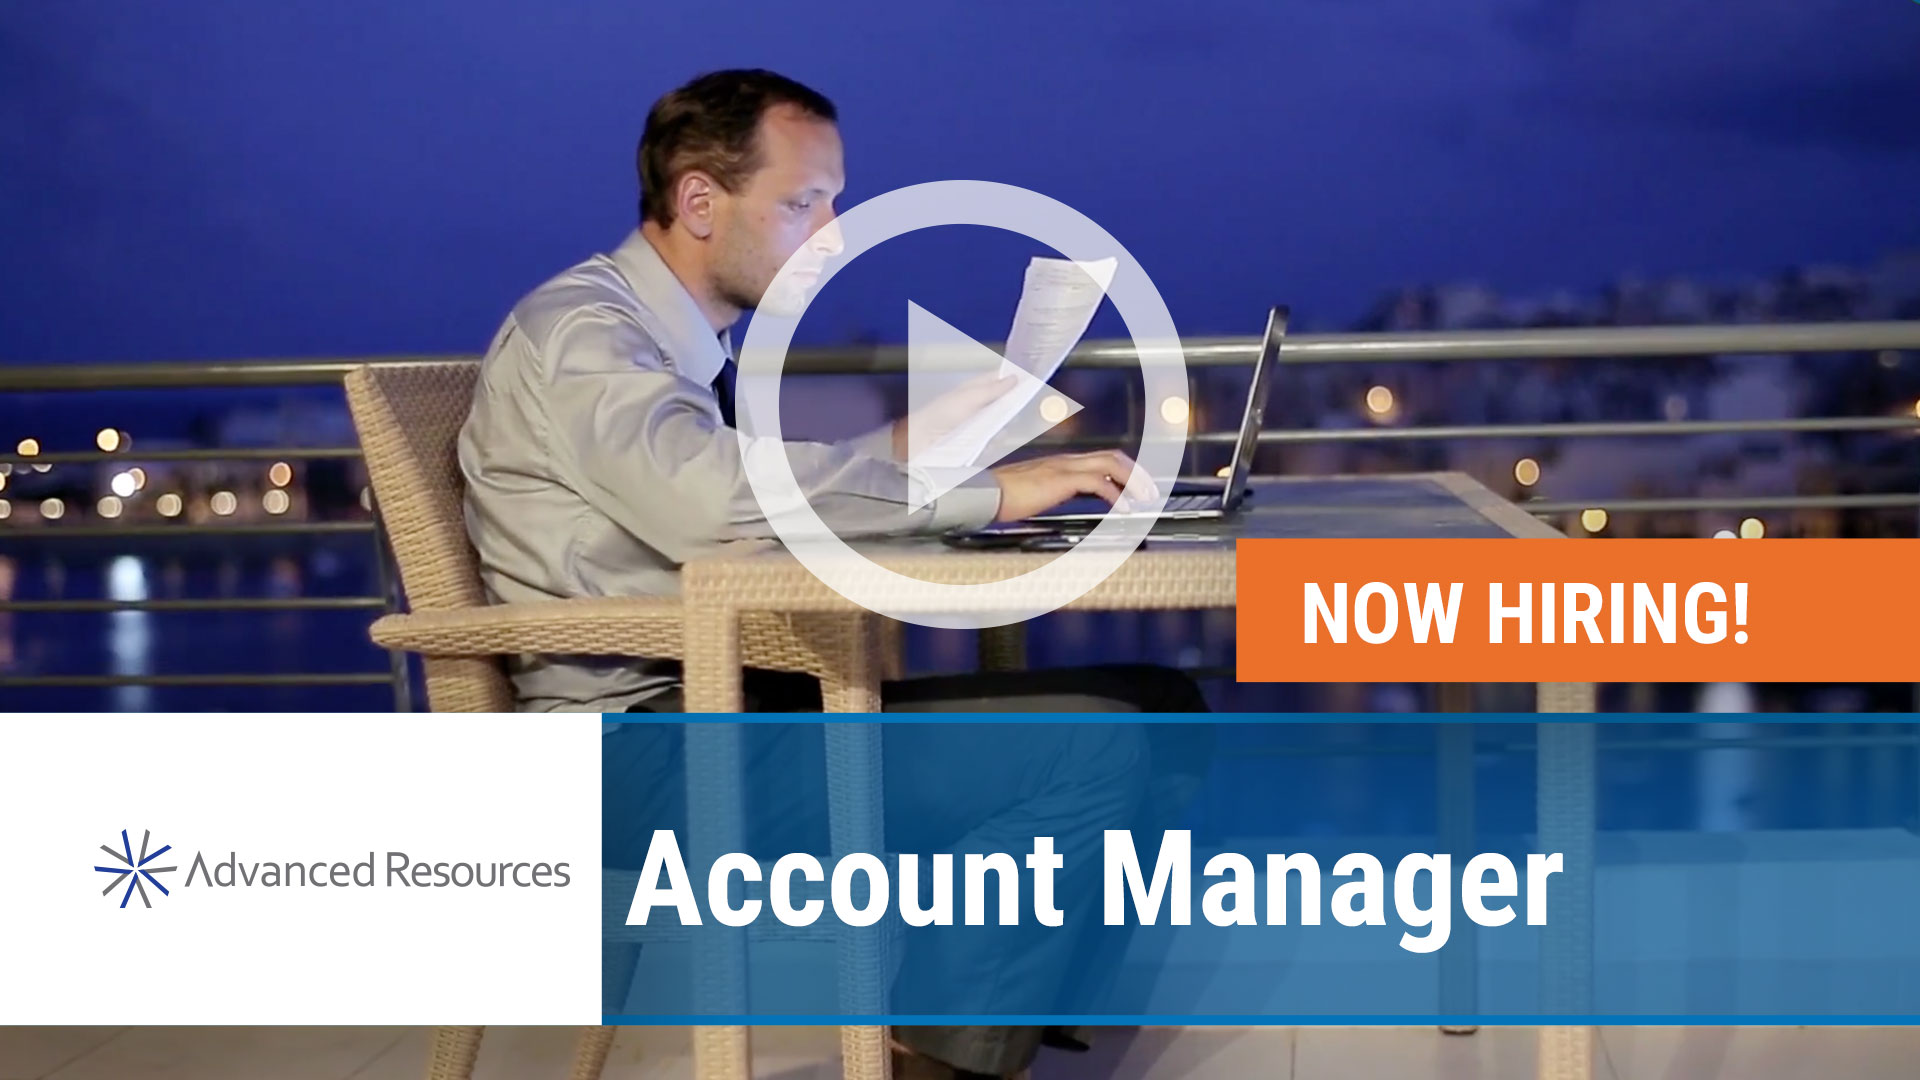 Watch our careers video for available job opening Account Manager in Schaumburg, Illinois